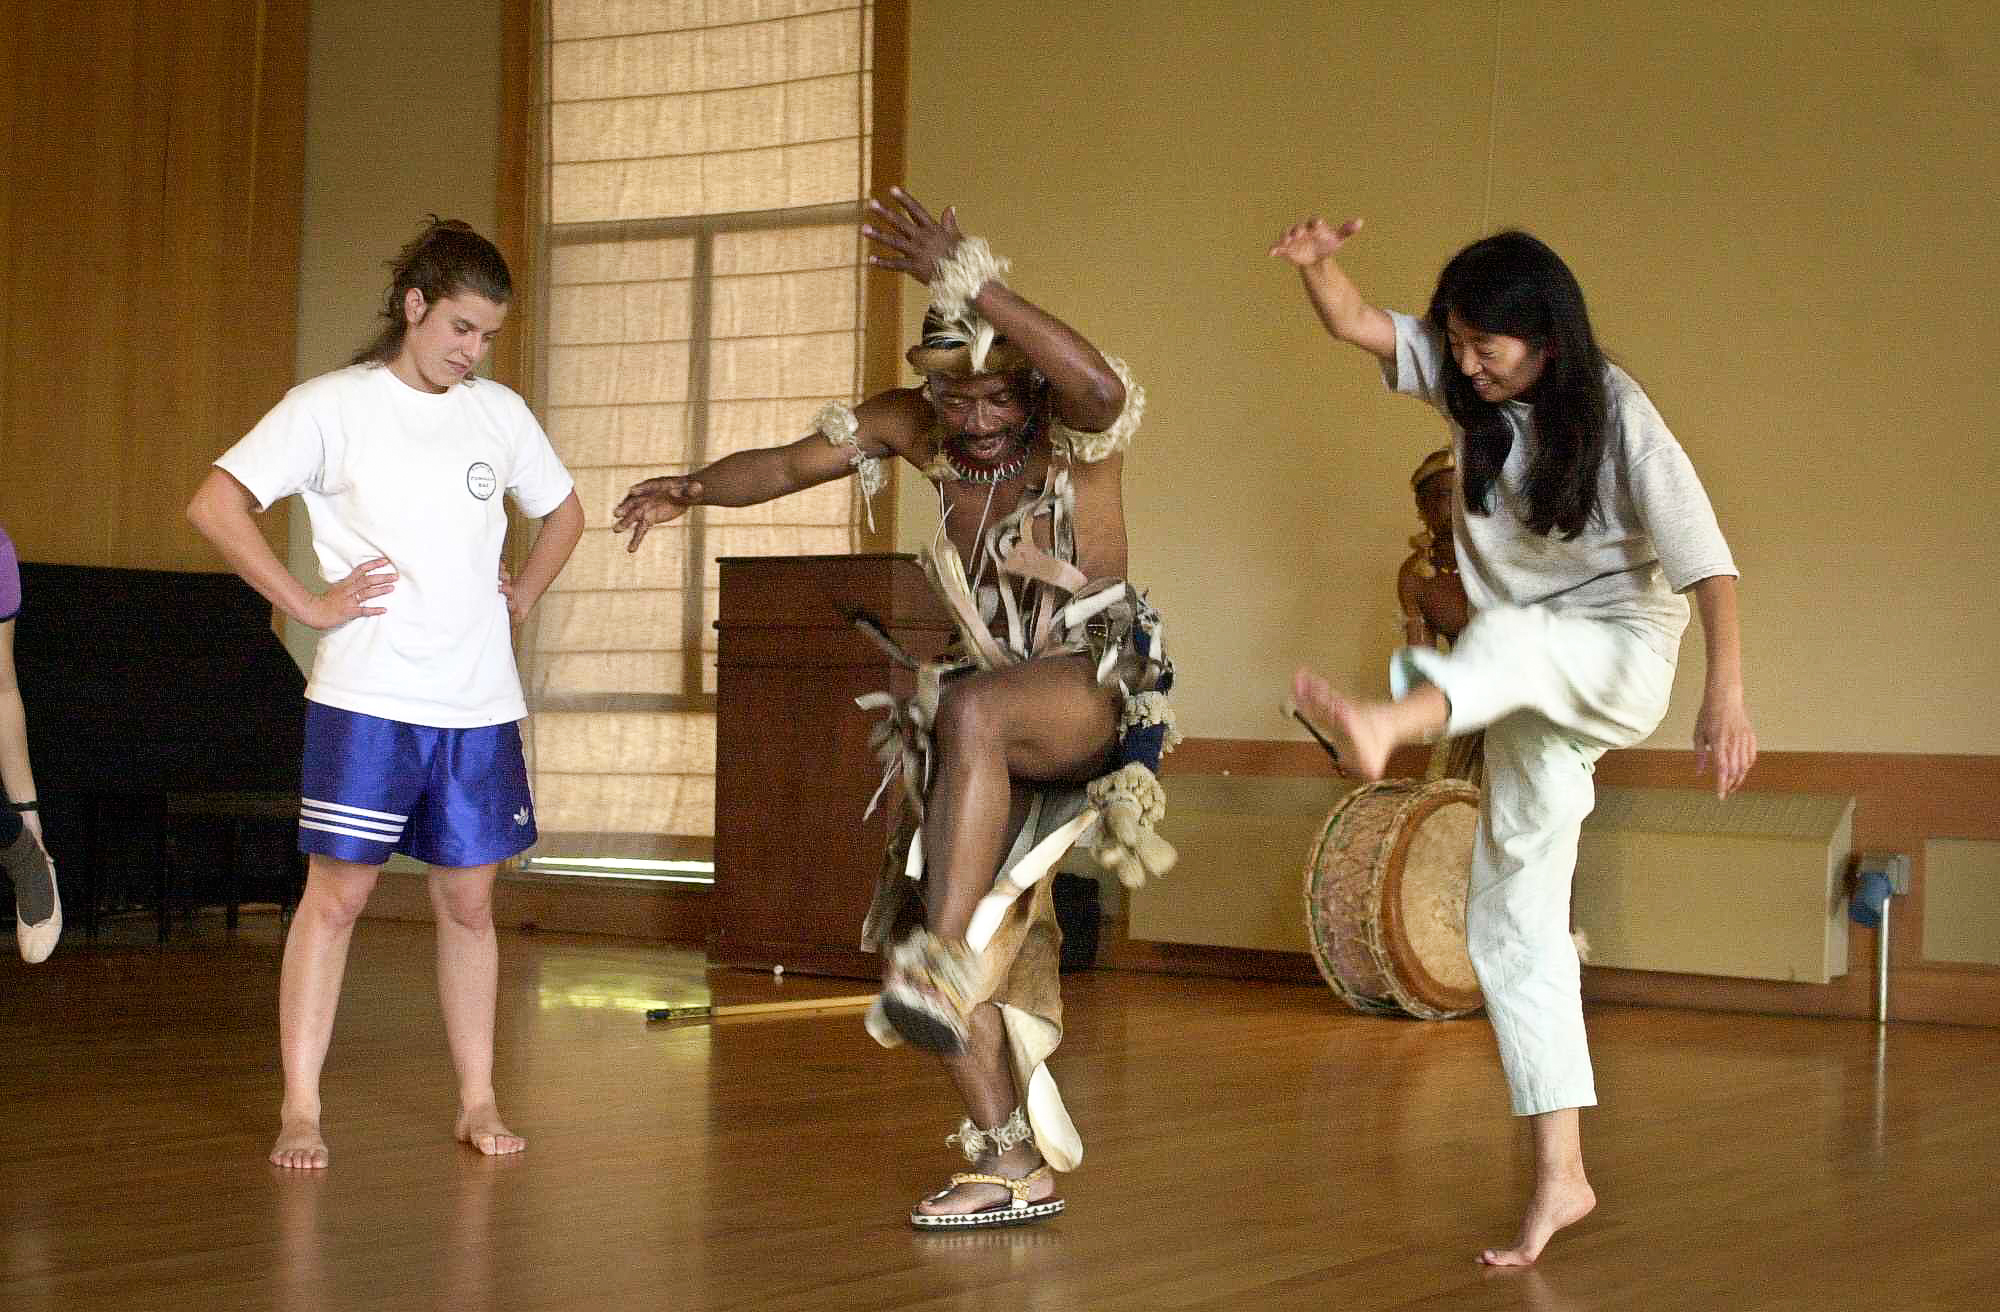 Dancers from Umzansi Zulu held workshops and demonstrations in November 2001 at Stanford.